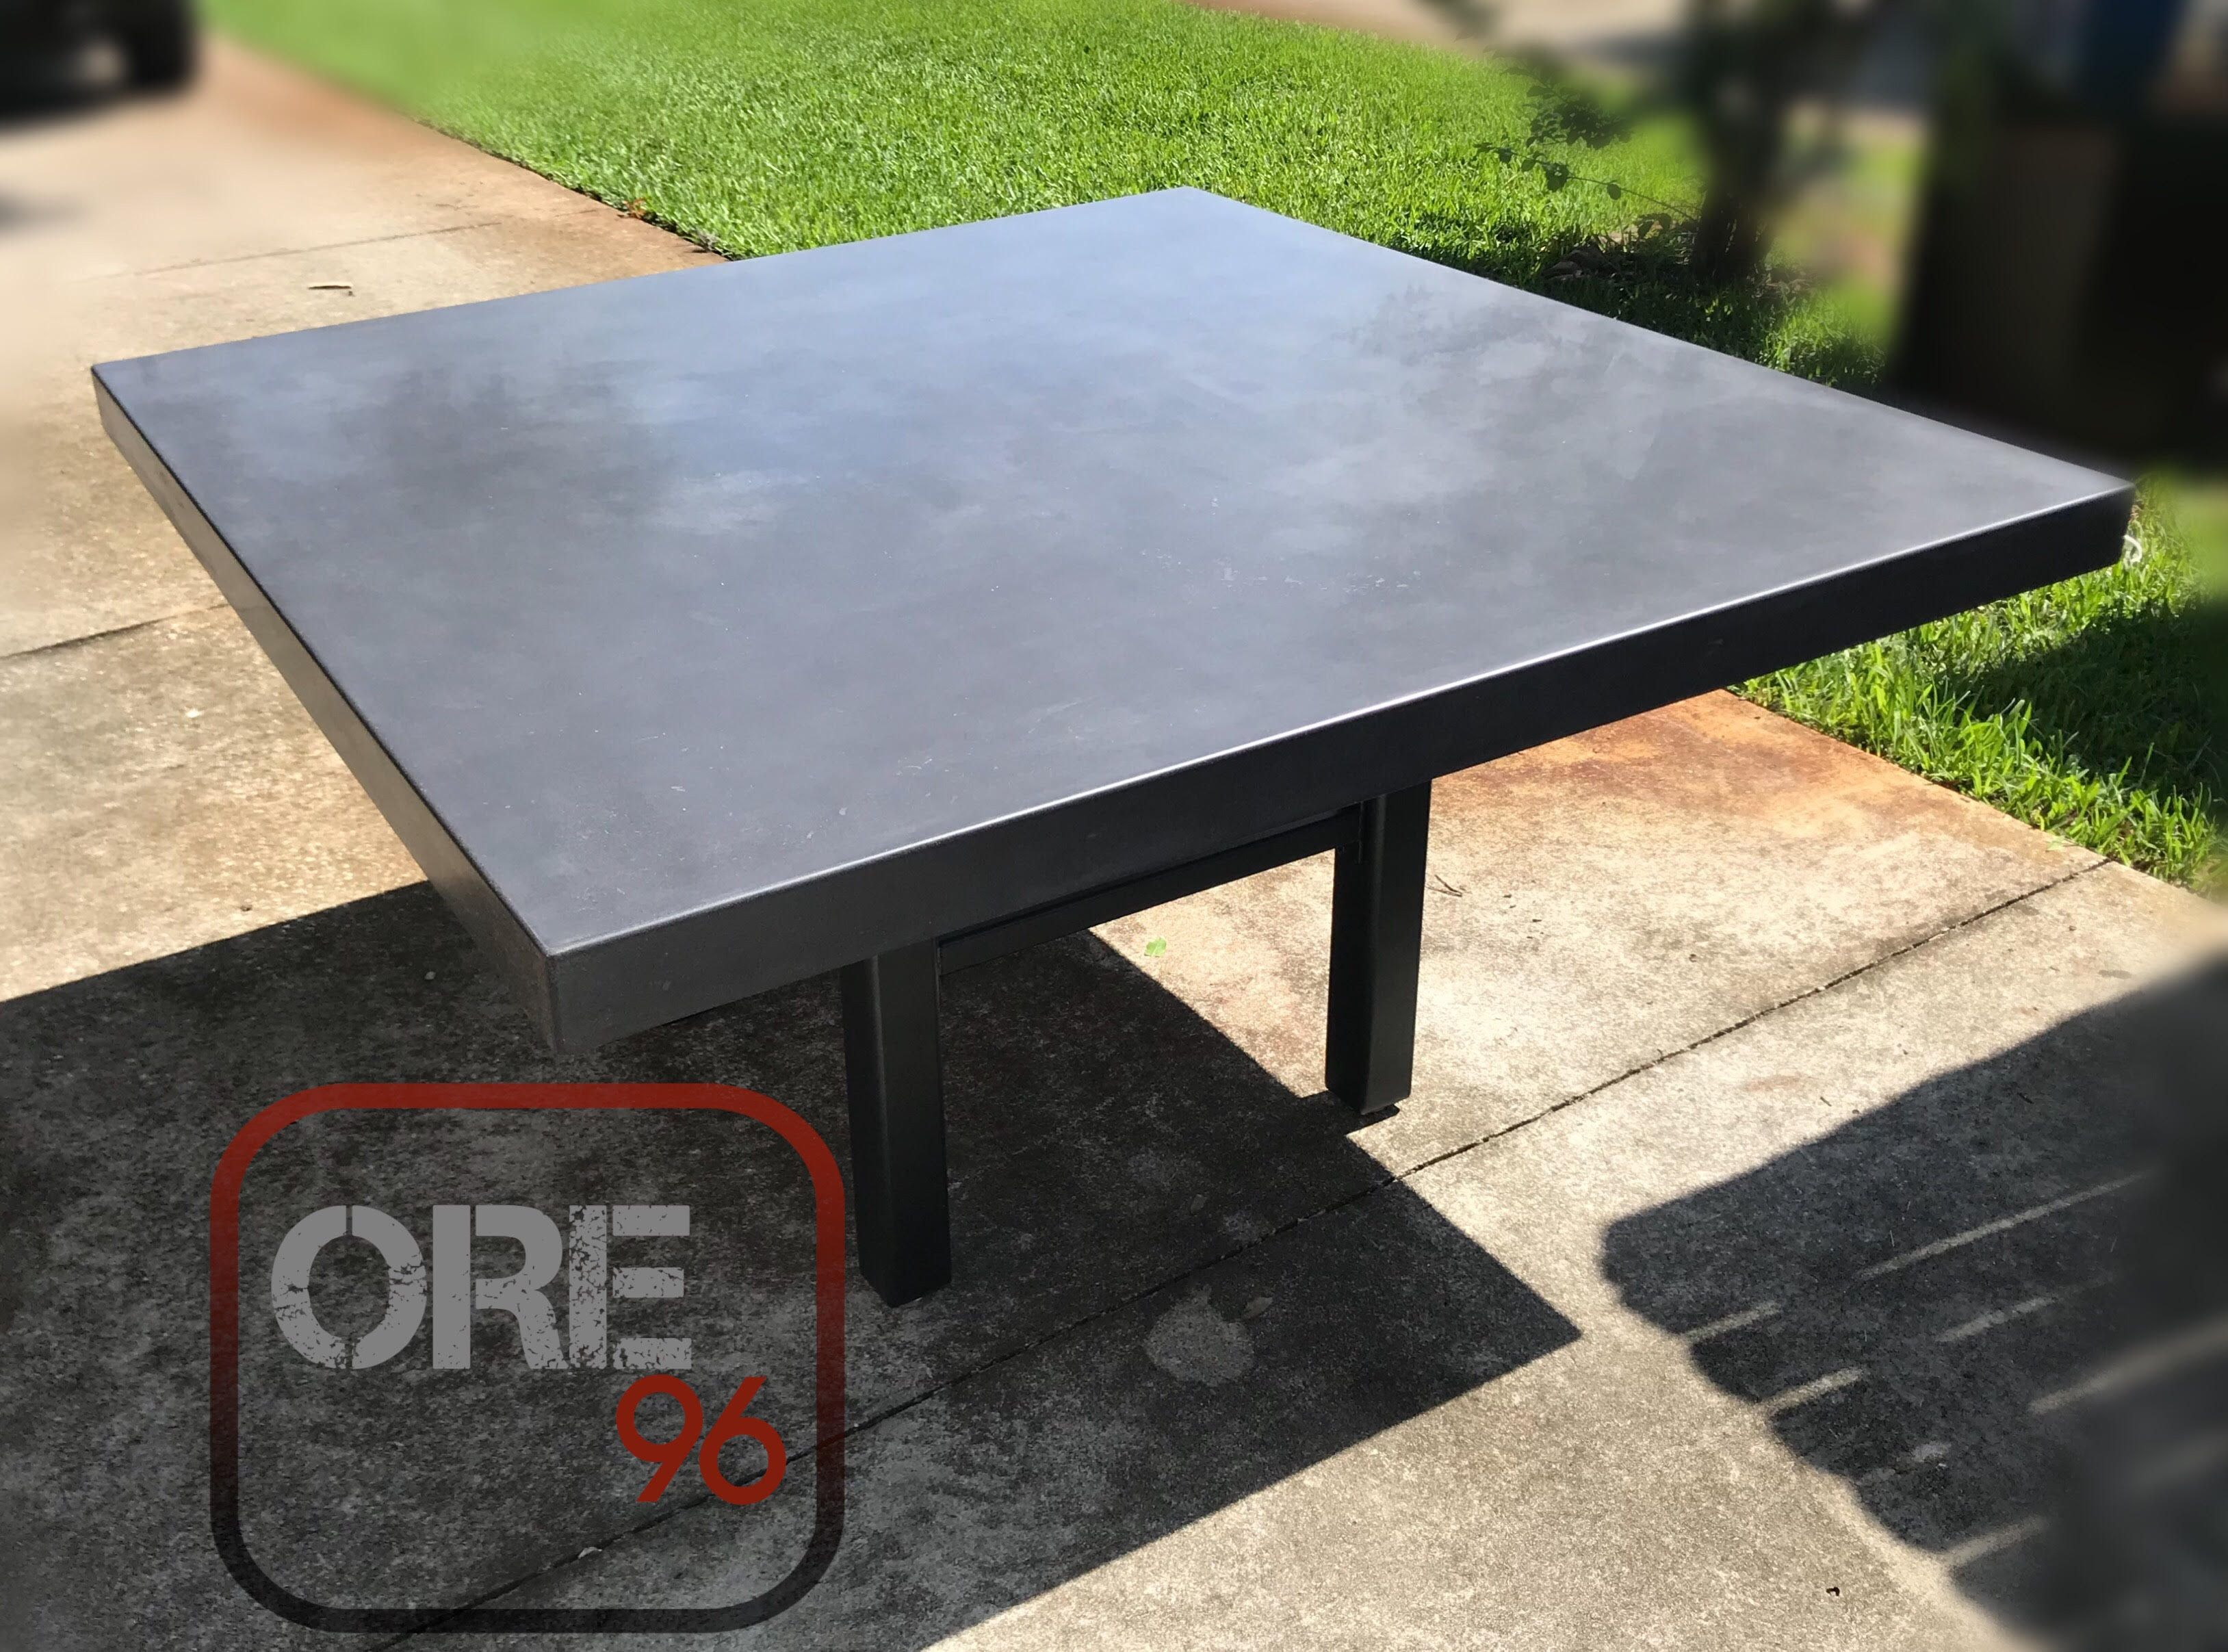 Custom Made Concrete Table By Ore CustomMadecom - Custom made concrete table